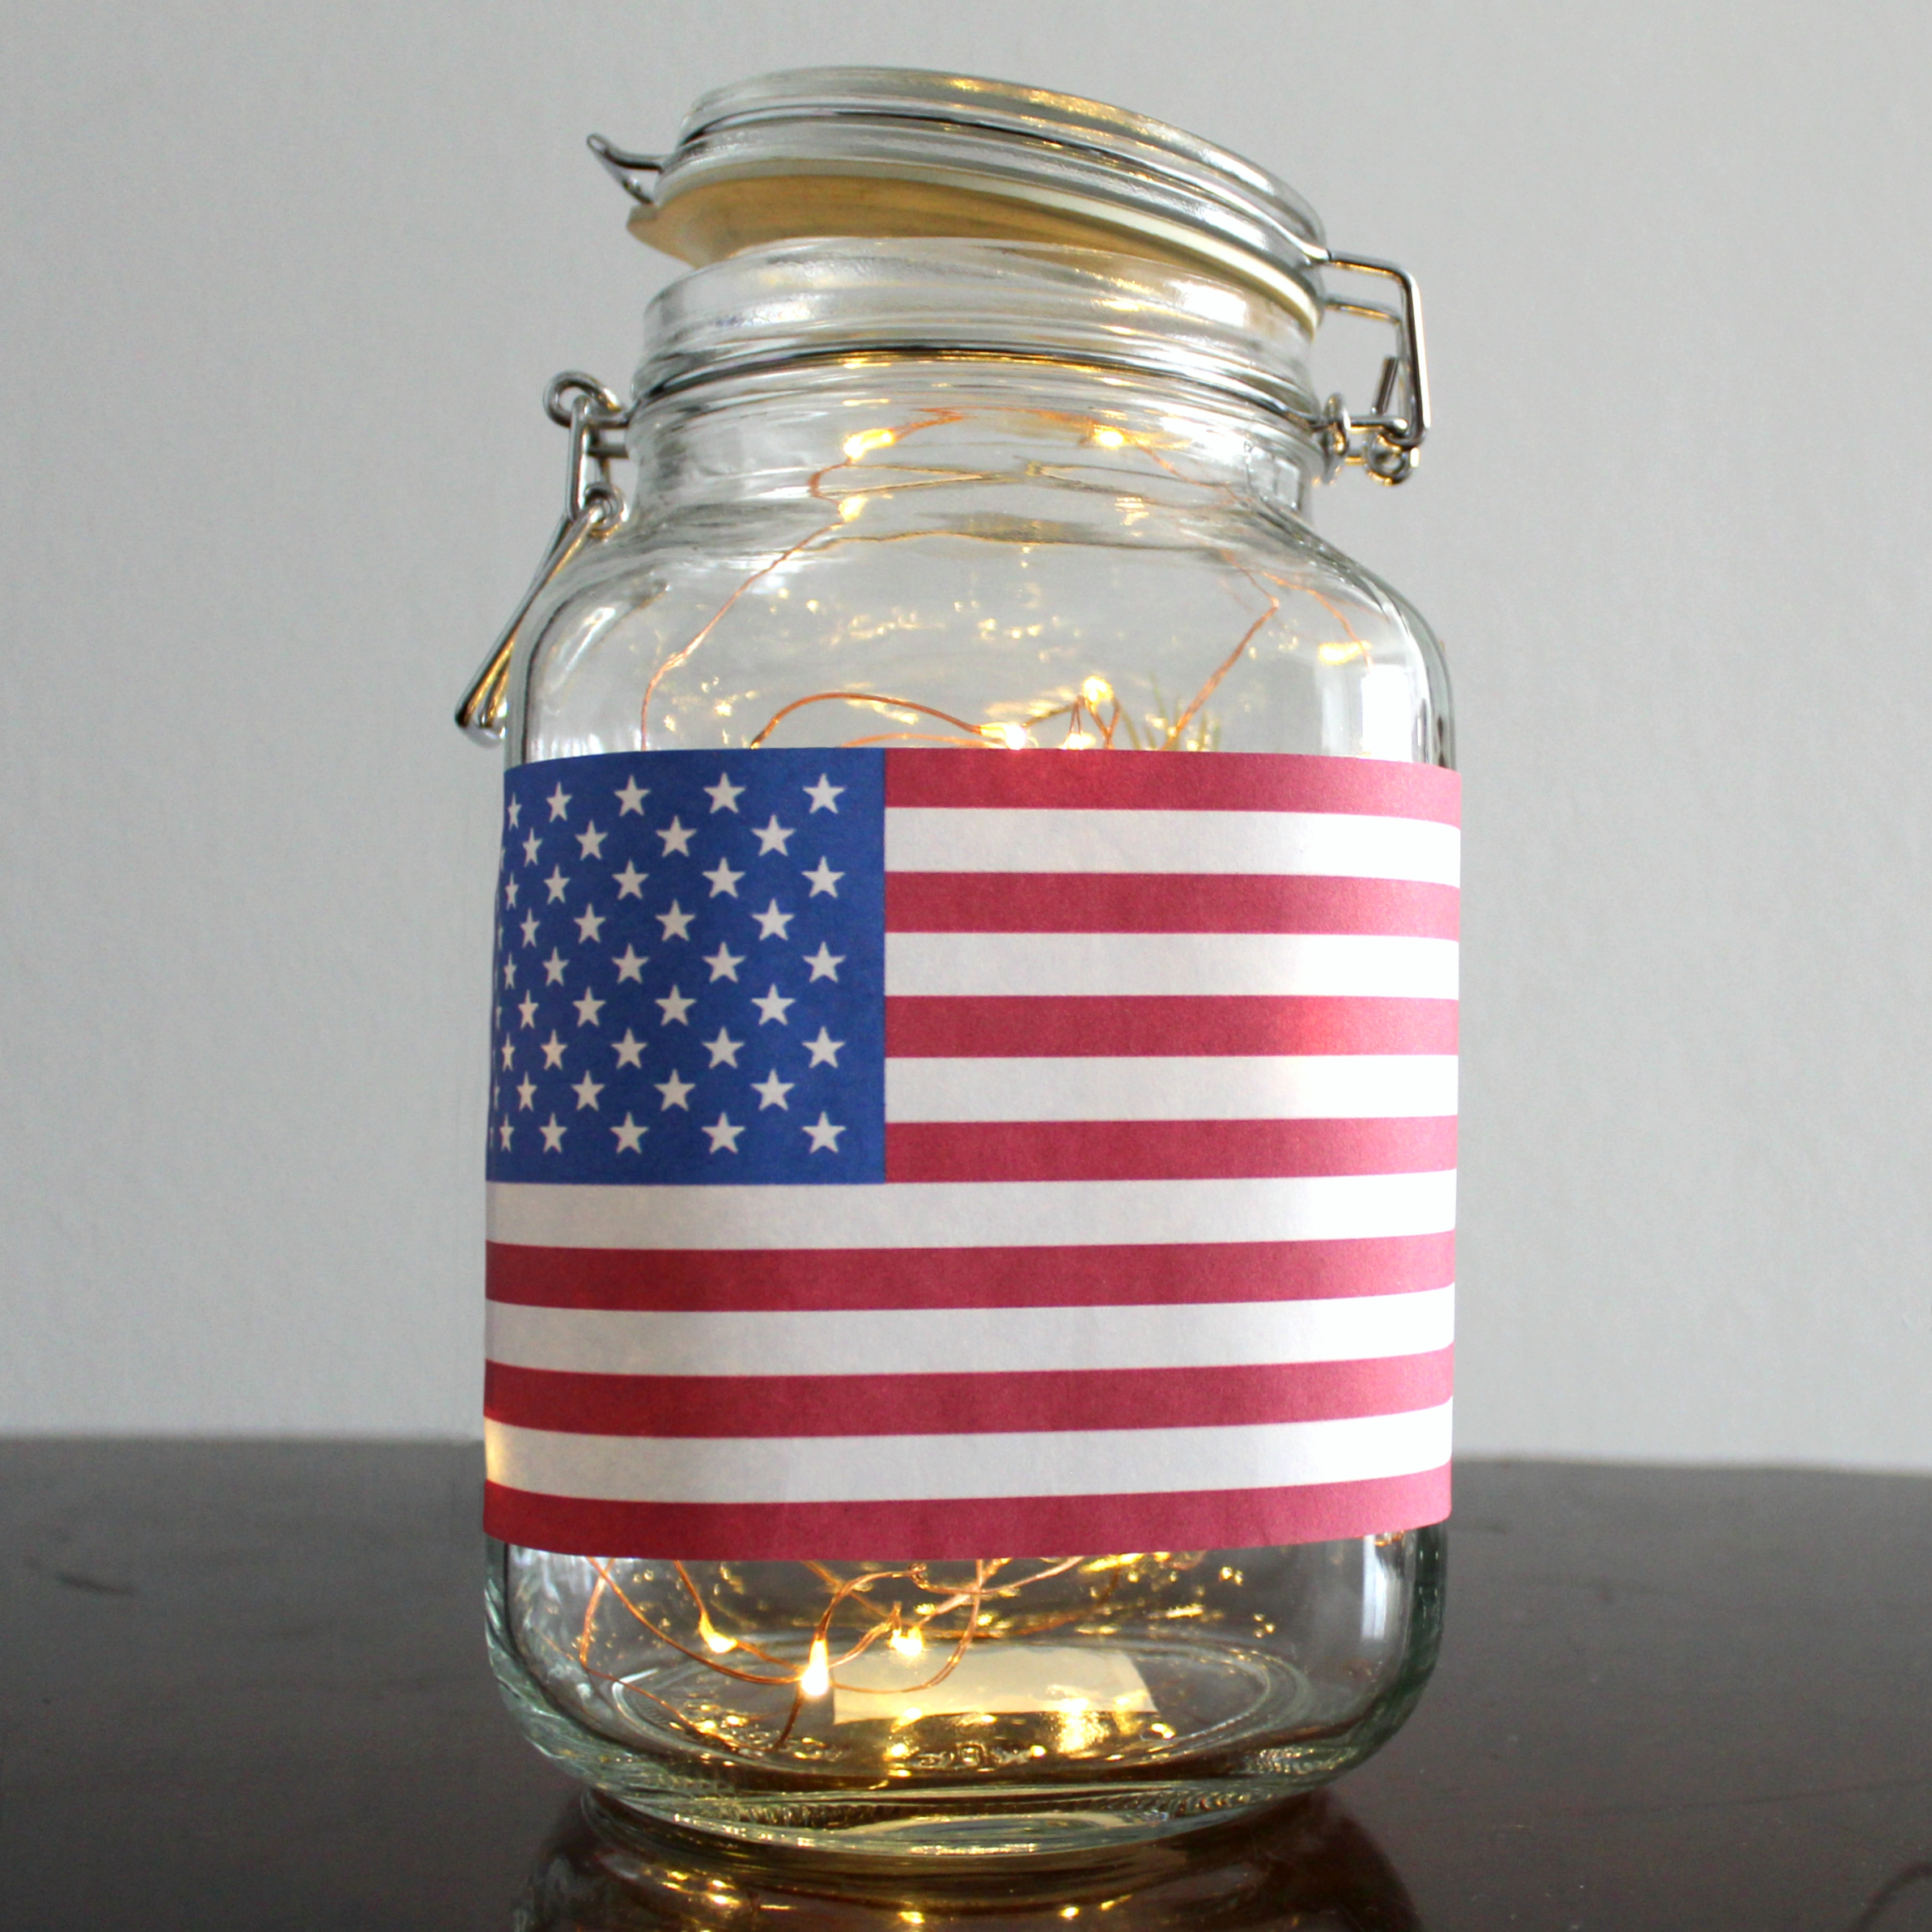 It was super simple to create this Independence Day themed luminary!